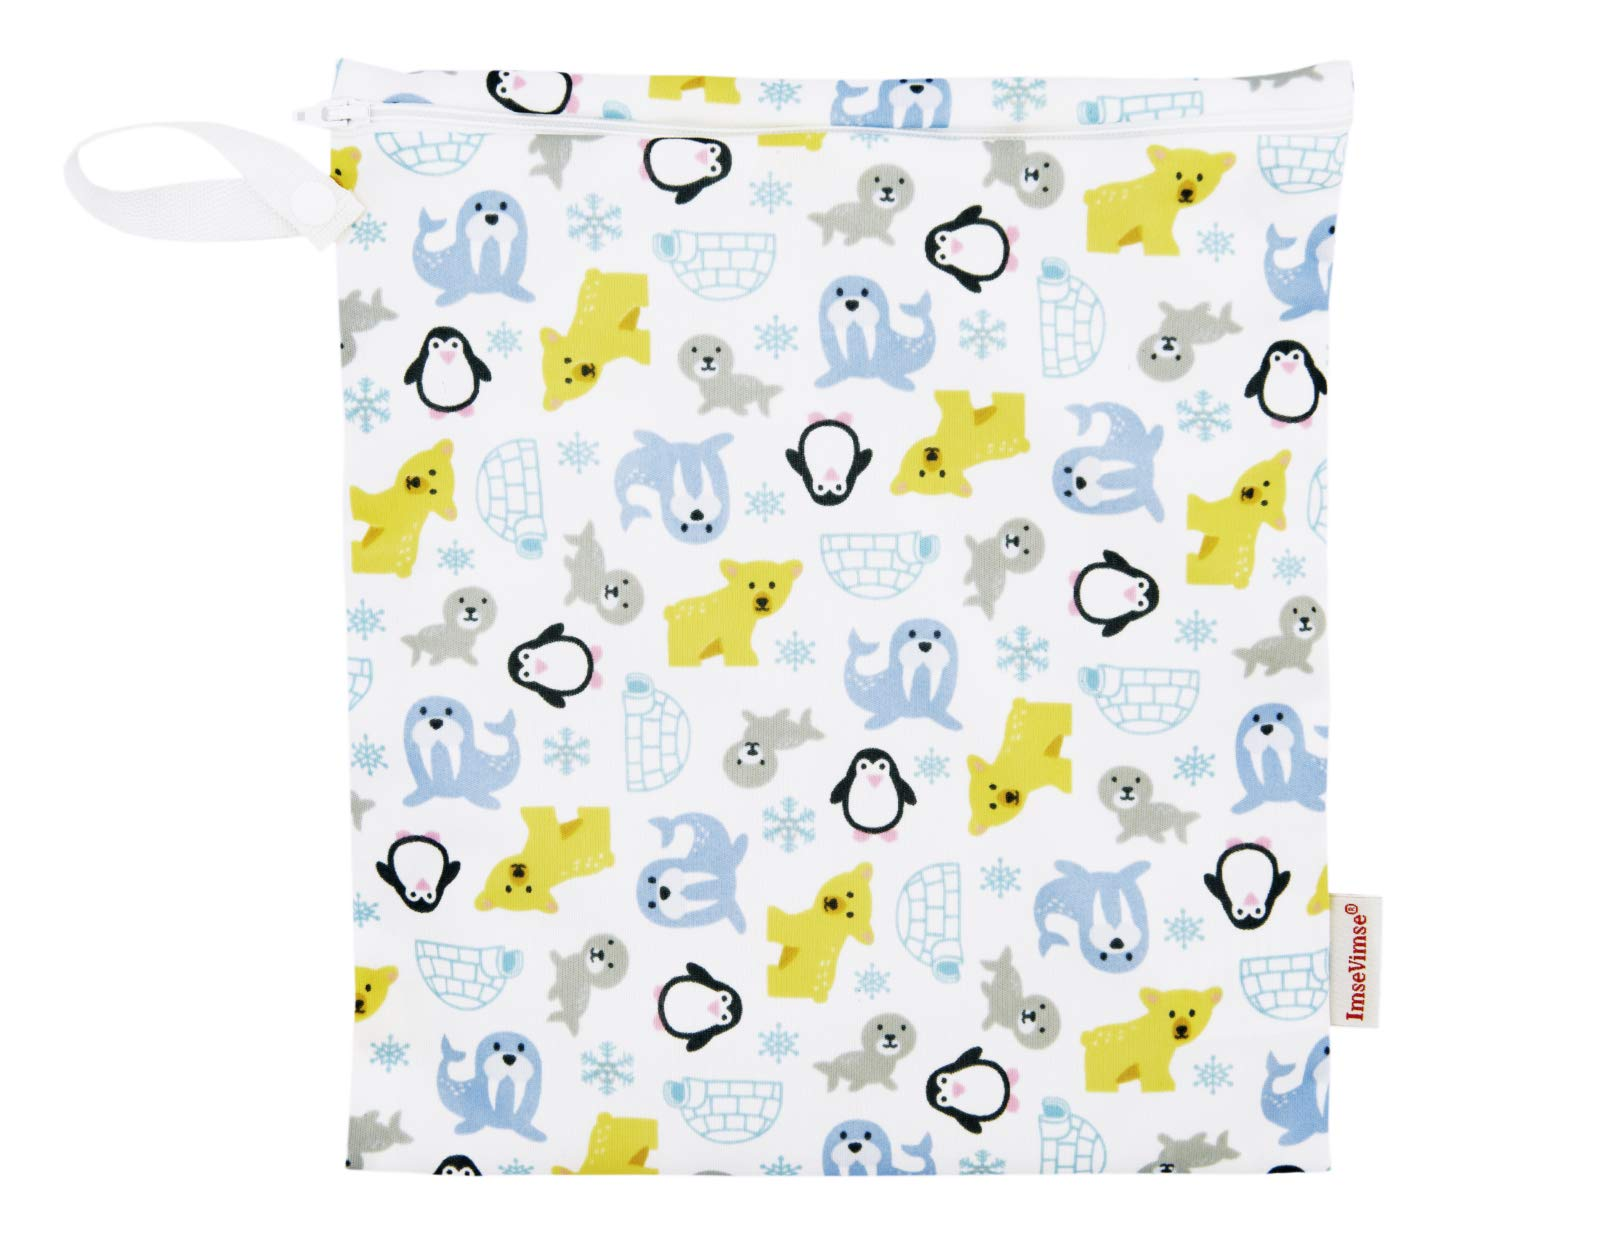 Imse Vimse Reusable Washable Wet Bags for Cloth Diapers (Snowland, Medium 10x11)